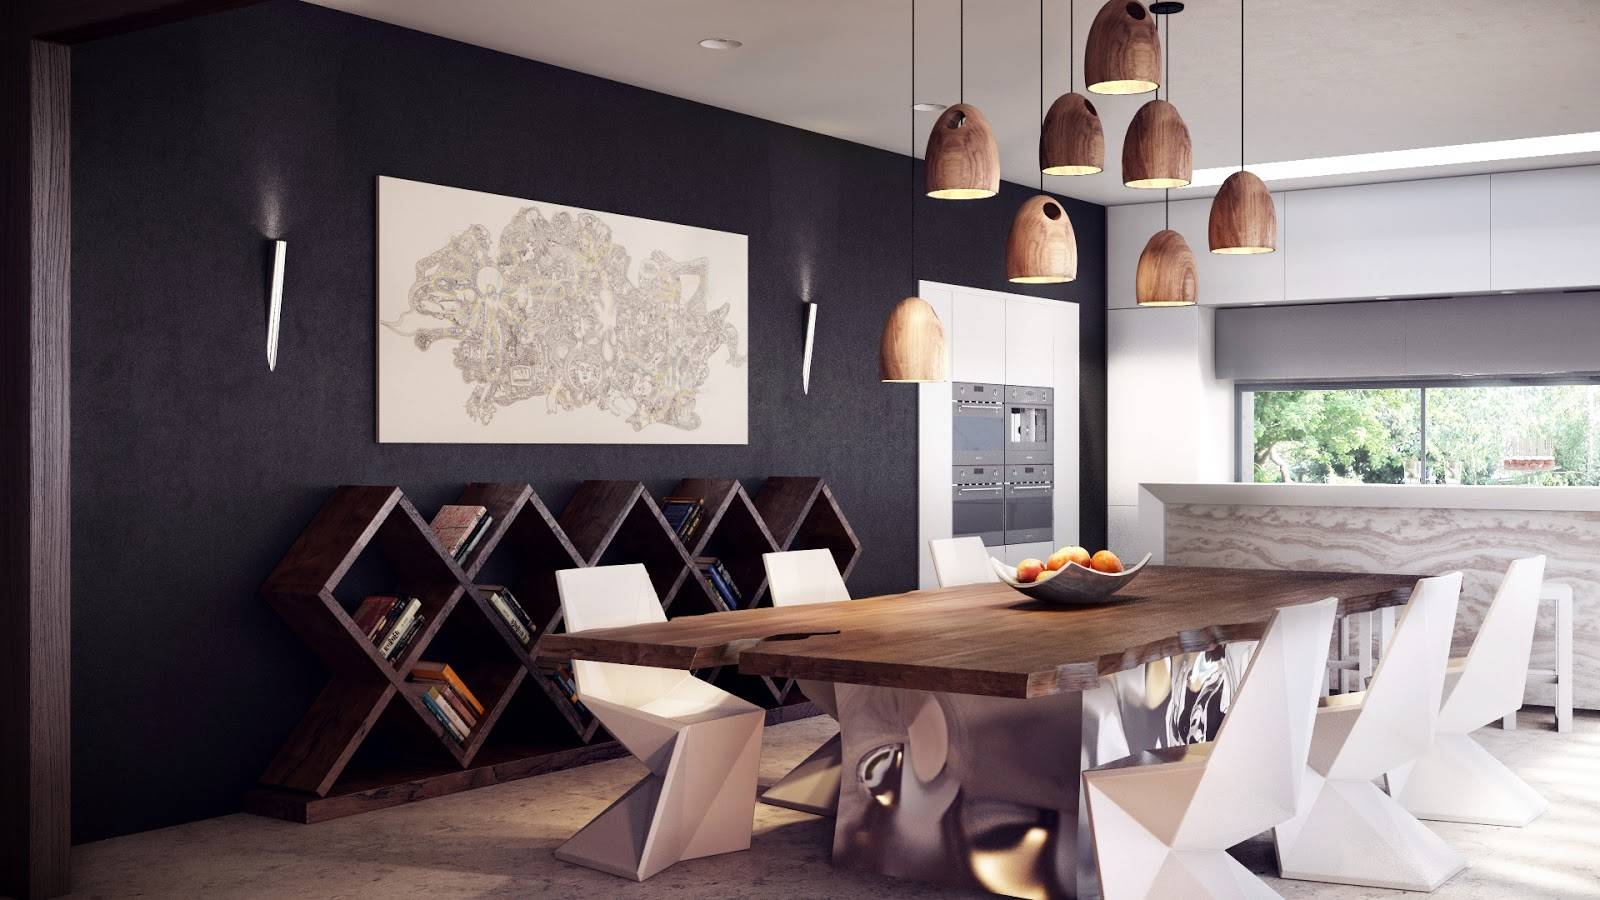 Dining Room : Contemporary Home Decor Wall Art Dining Room – Igf Usa With Regard To Newest Modern Wall Art For Dining Room (View 9 of 15)